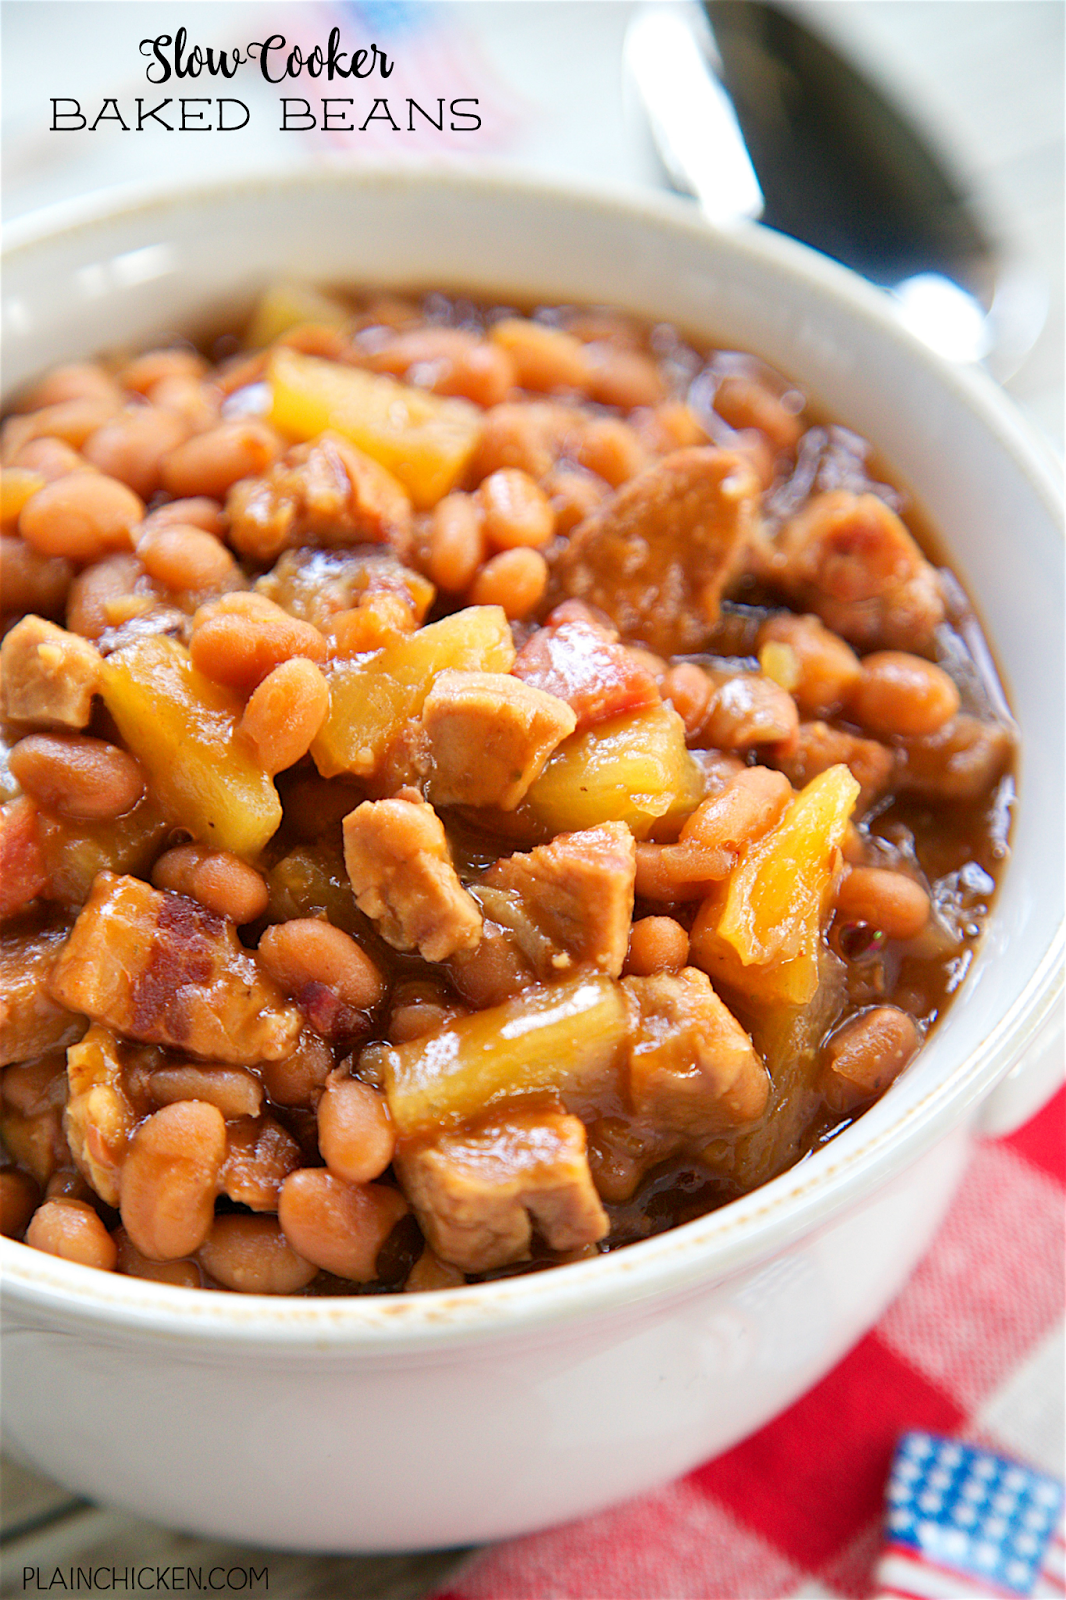 Slow Cooker Pineapple Baked Beans - Plain Chicken